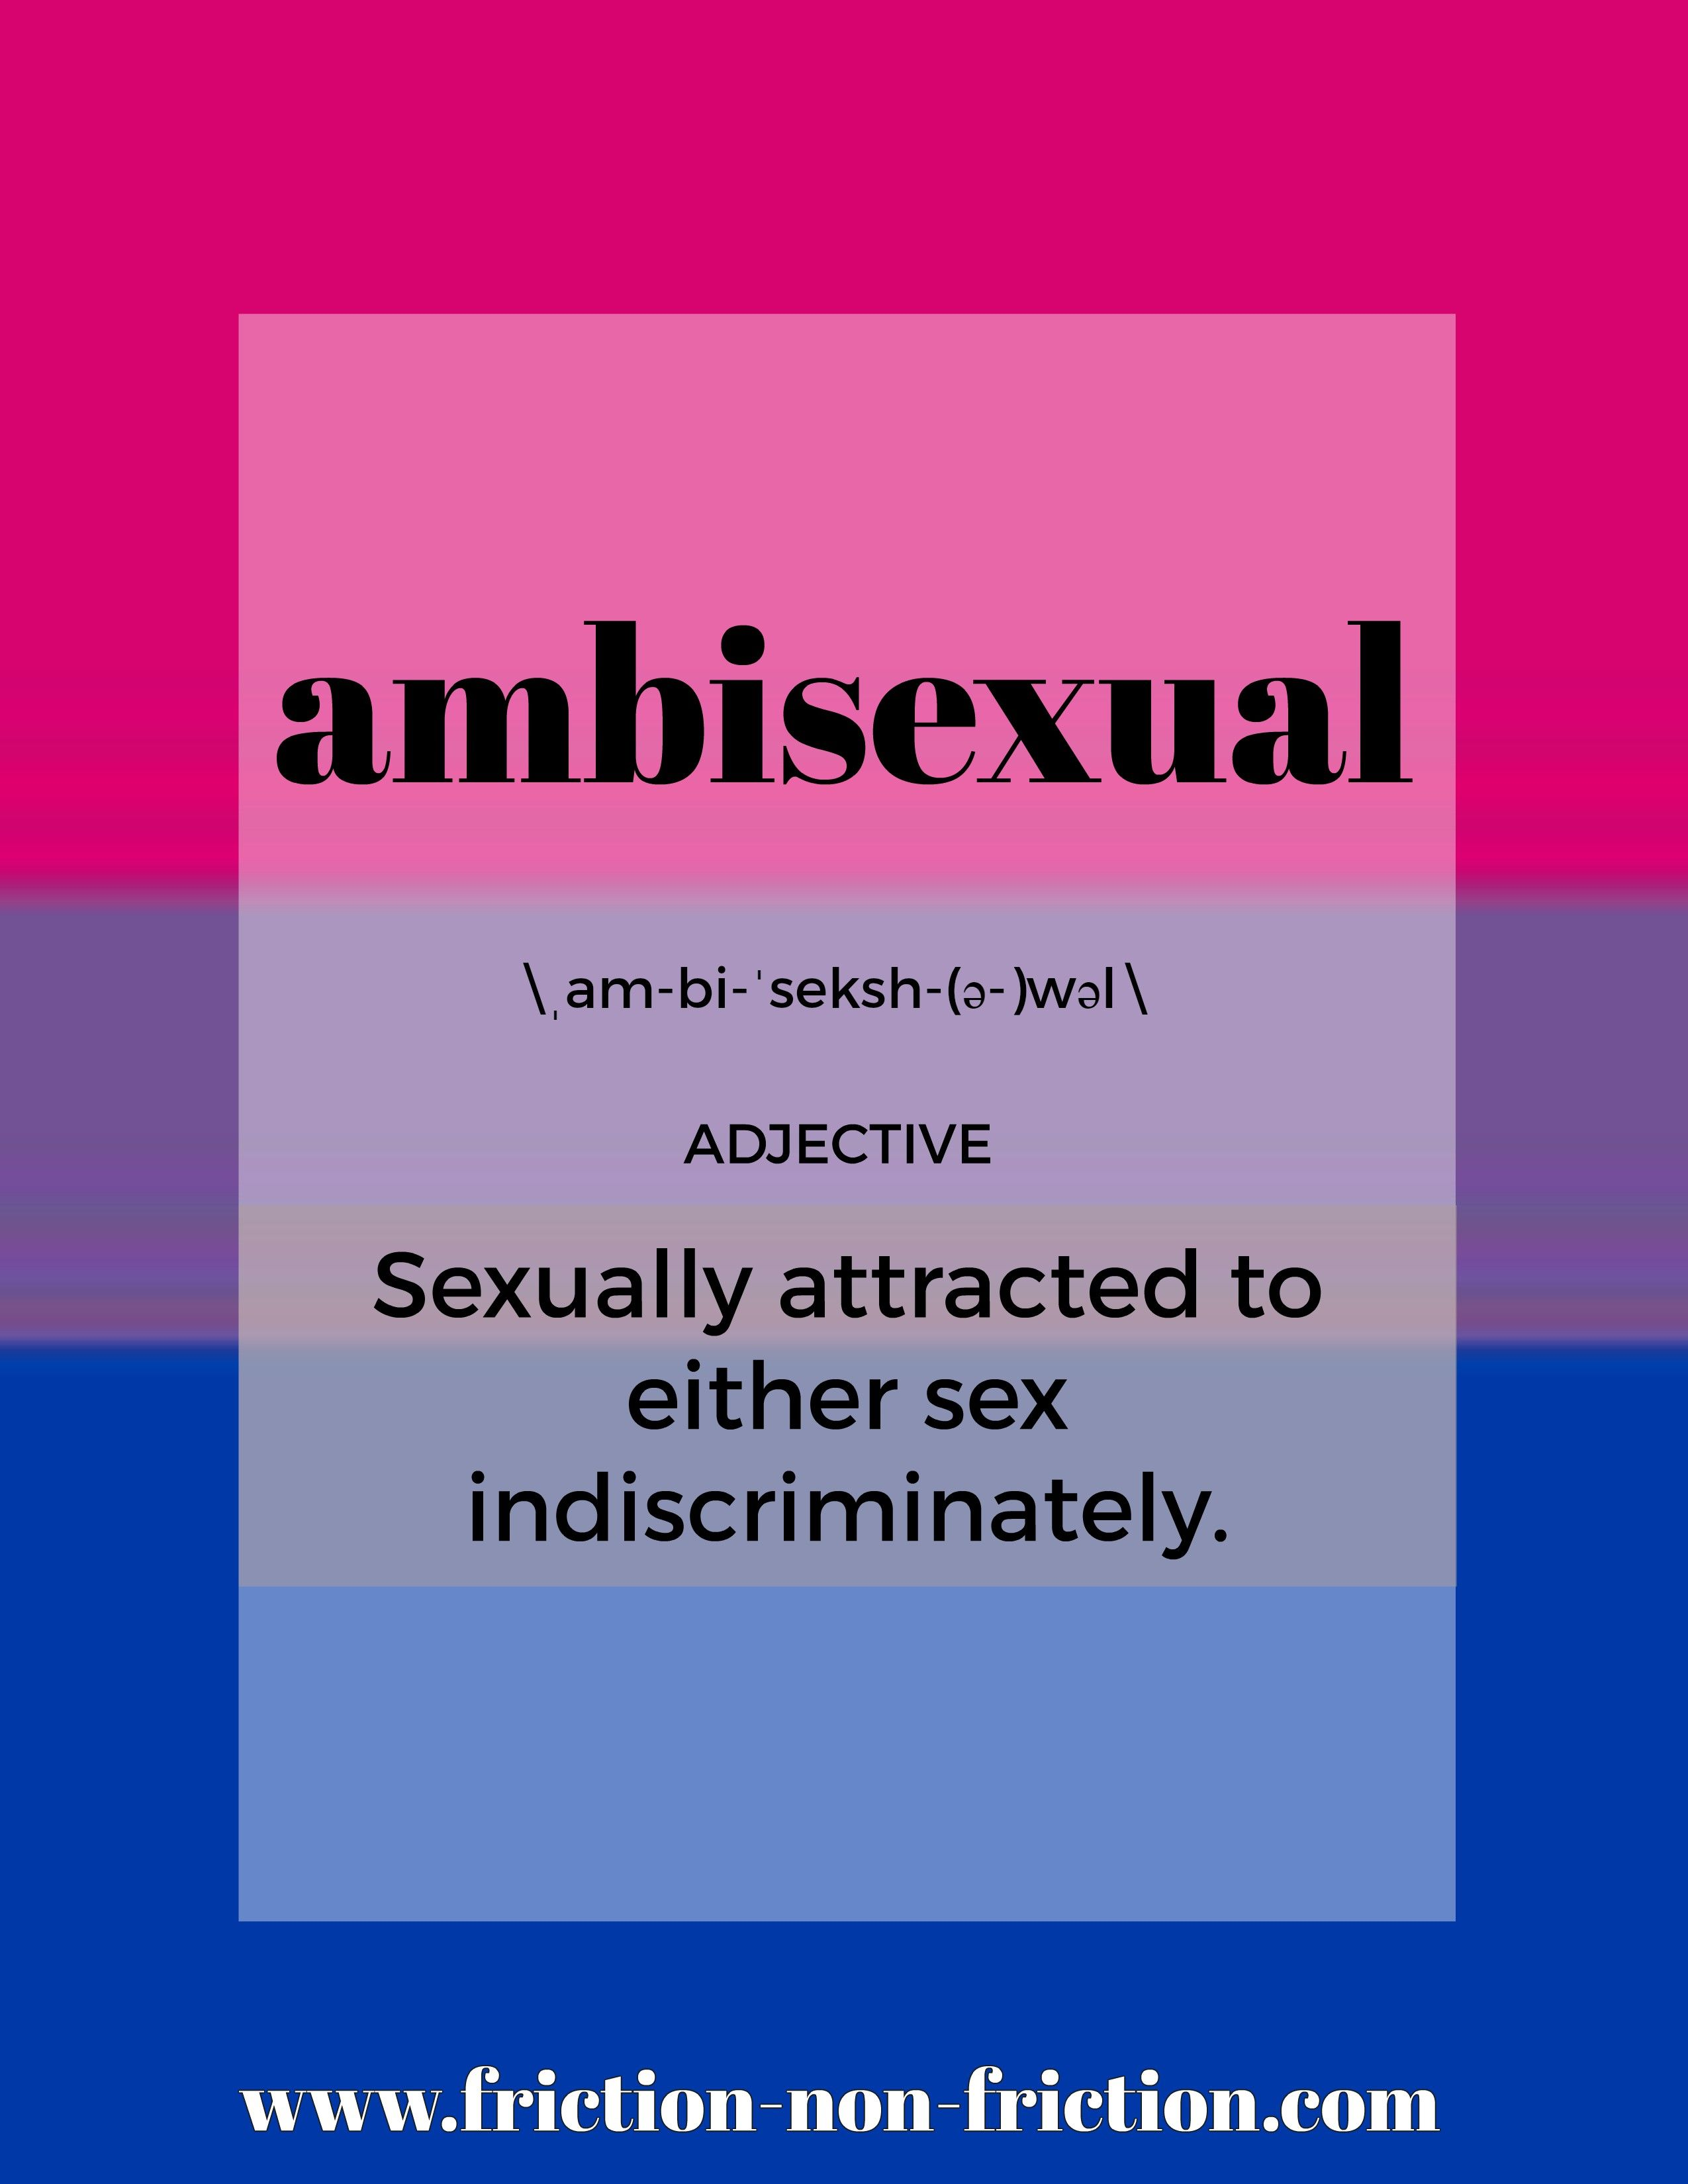 Ambisexuality meaning